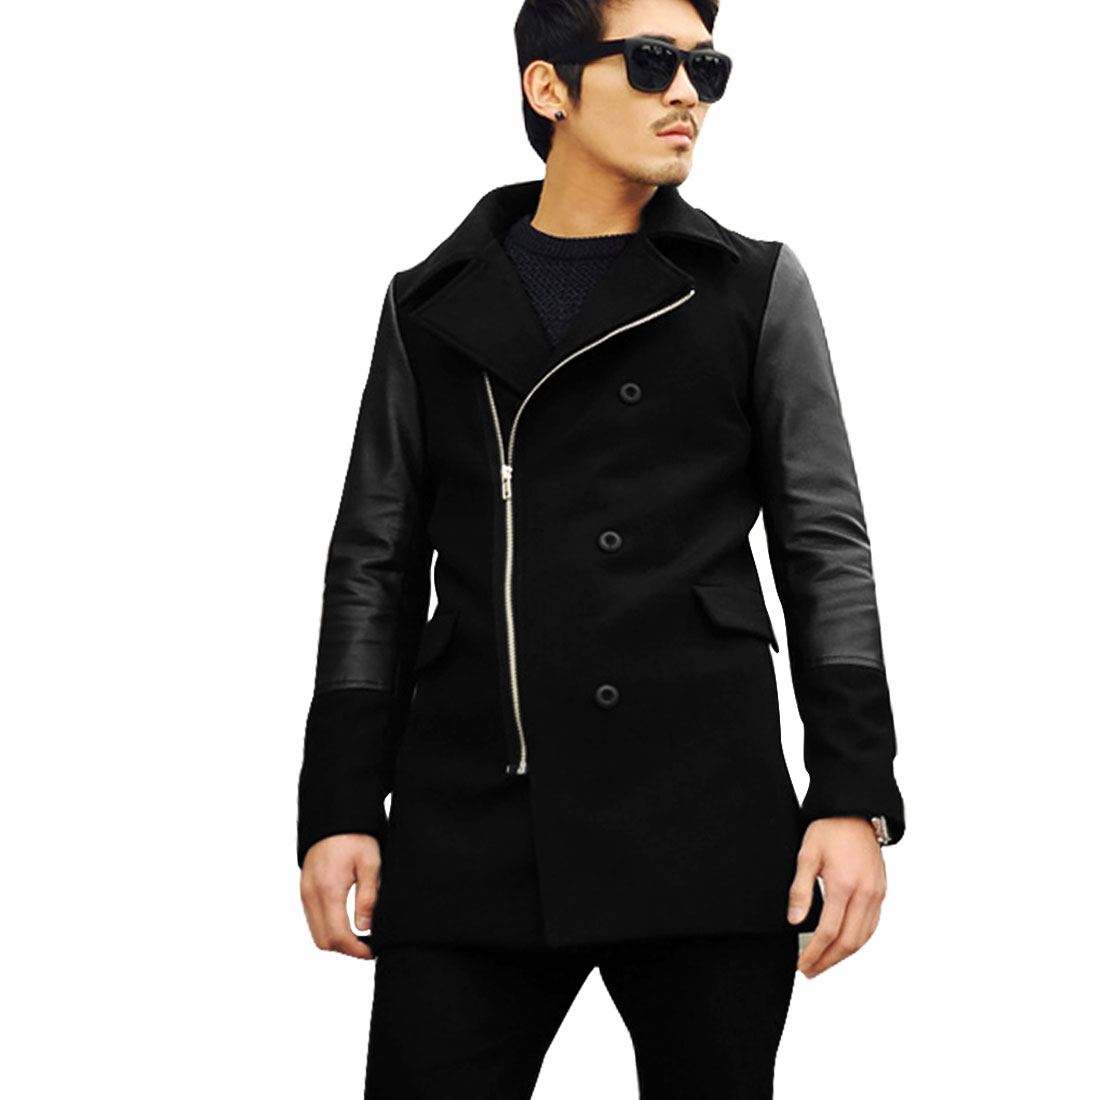 Men Zipper Closed Faux Leather Splicing Black Worsted Jacket S